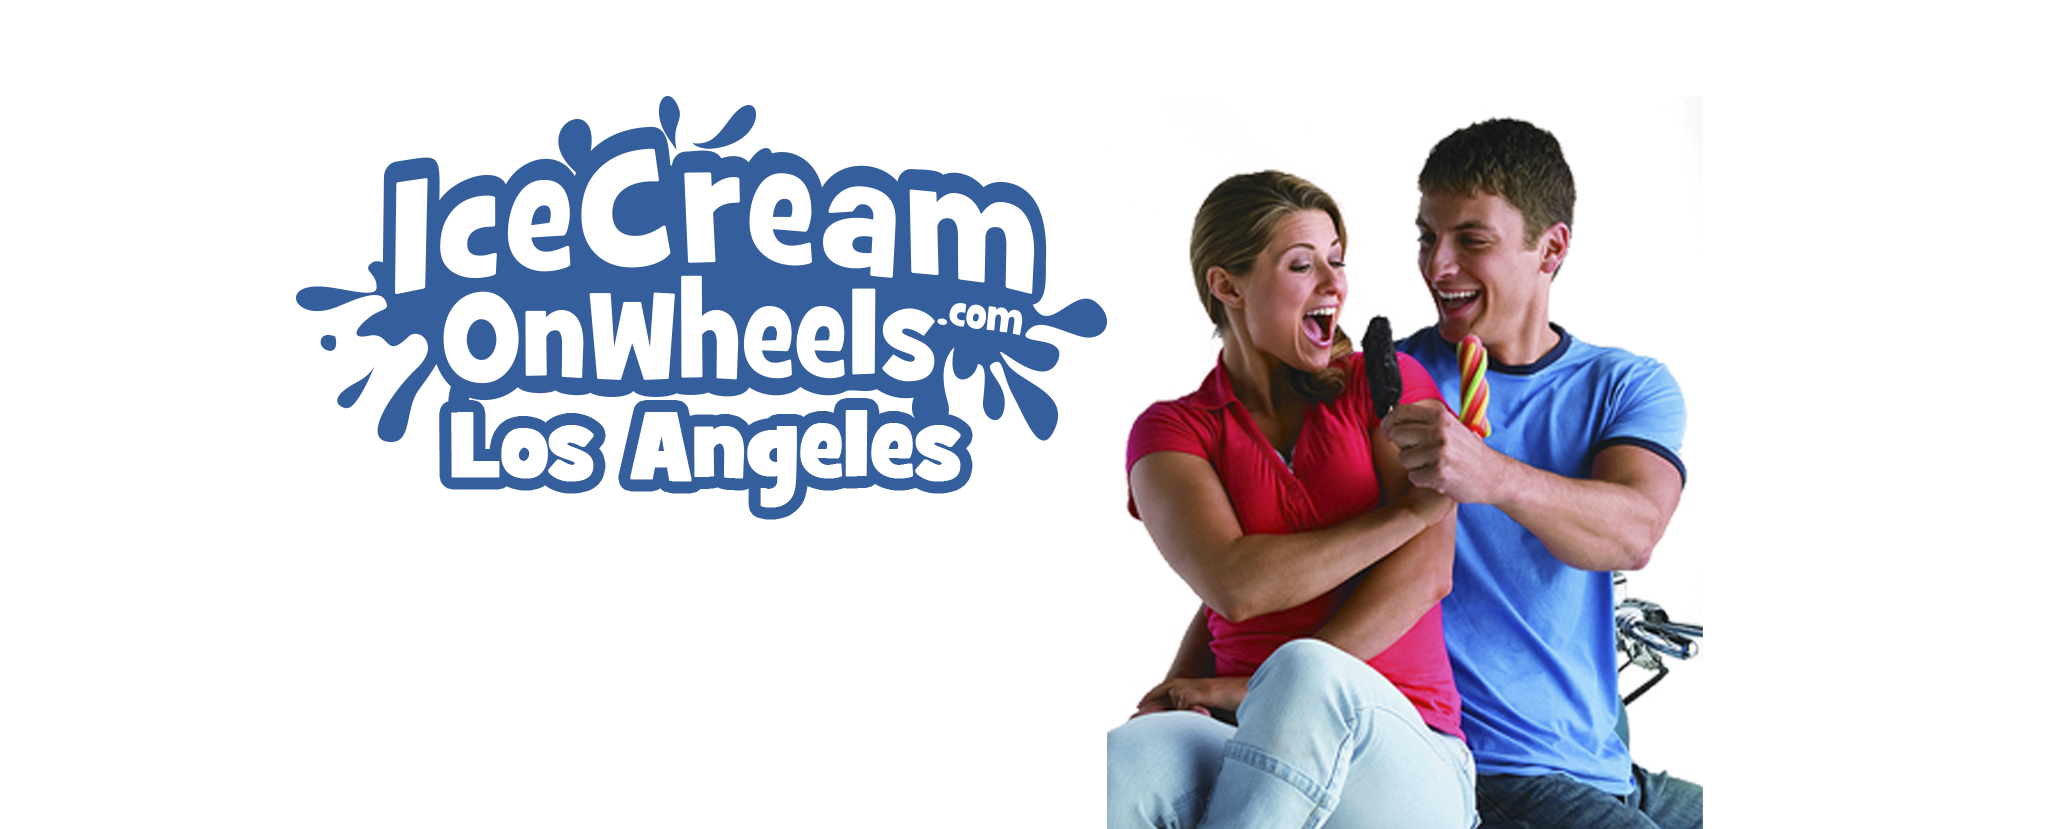 School Events Ice Cream Caterers Los Angeles